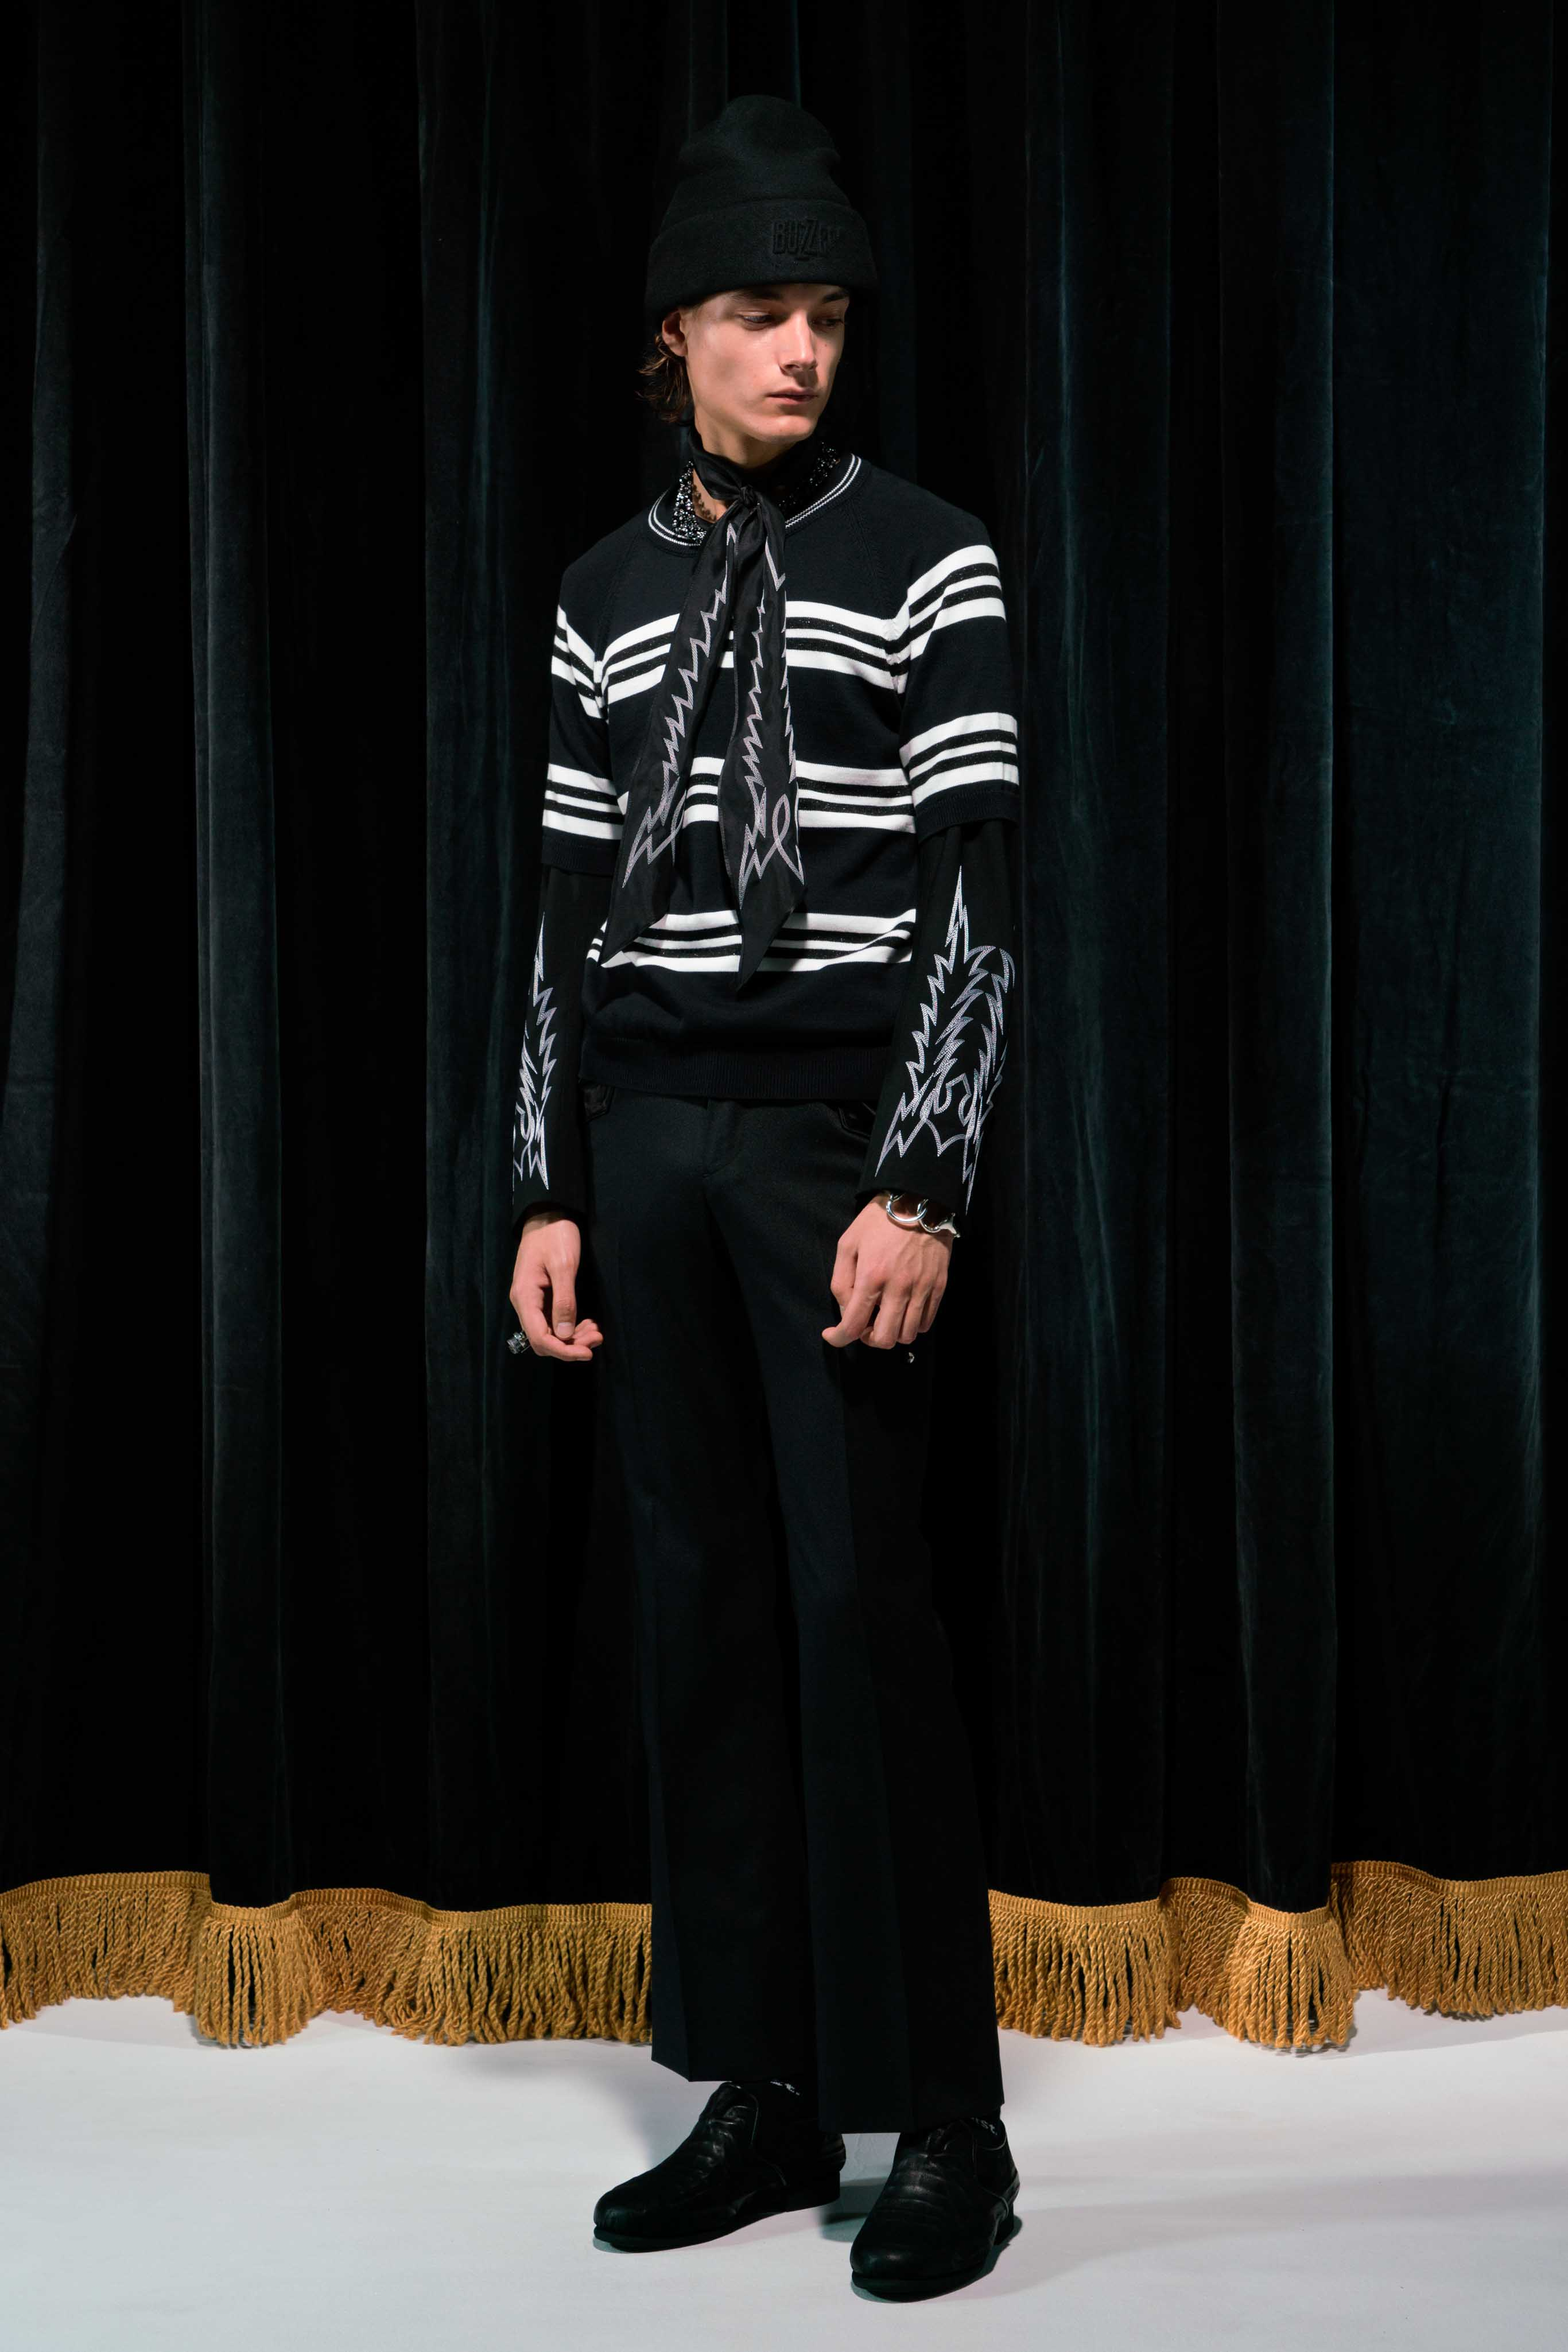 TAKAHIROMIYASHITA TheSoloist S/S18 Men's - Lookbook - Takahiro Miyashita the Soloist, SZ, StyleZeitgeist, SS18, Spring Summer, MENSWEAR, Mens Fashion, lookbook, Fashion, 2017